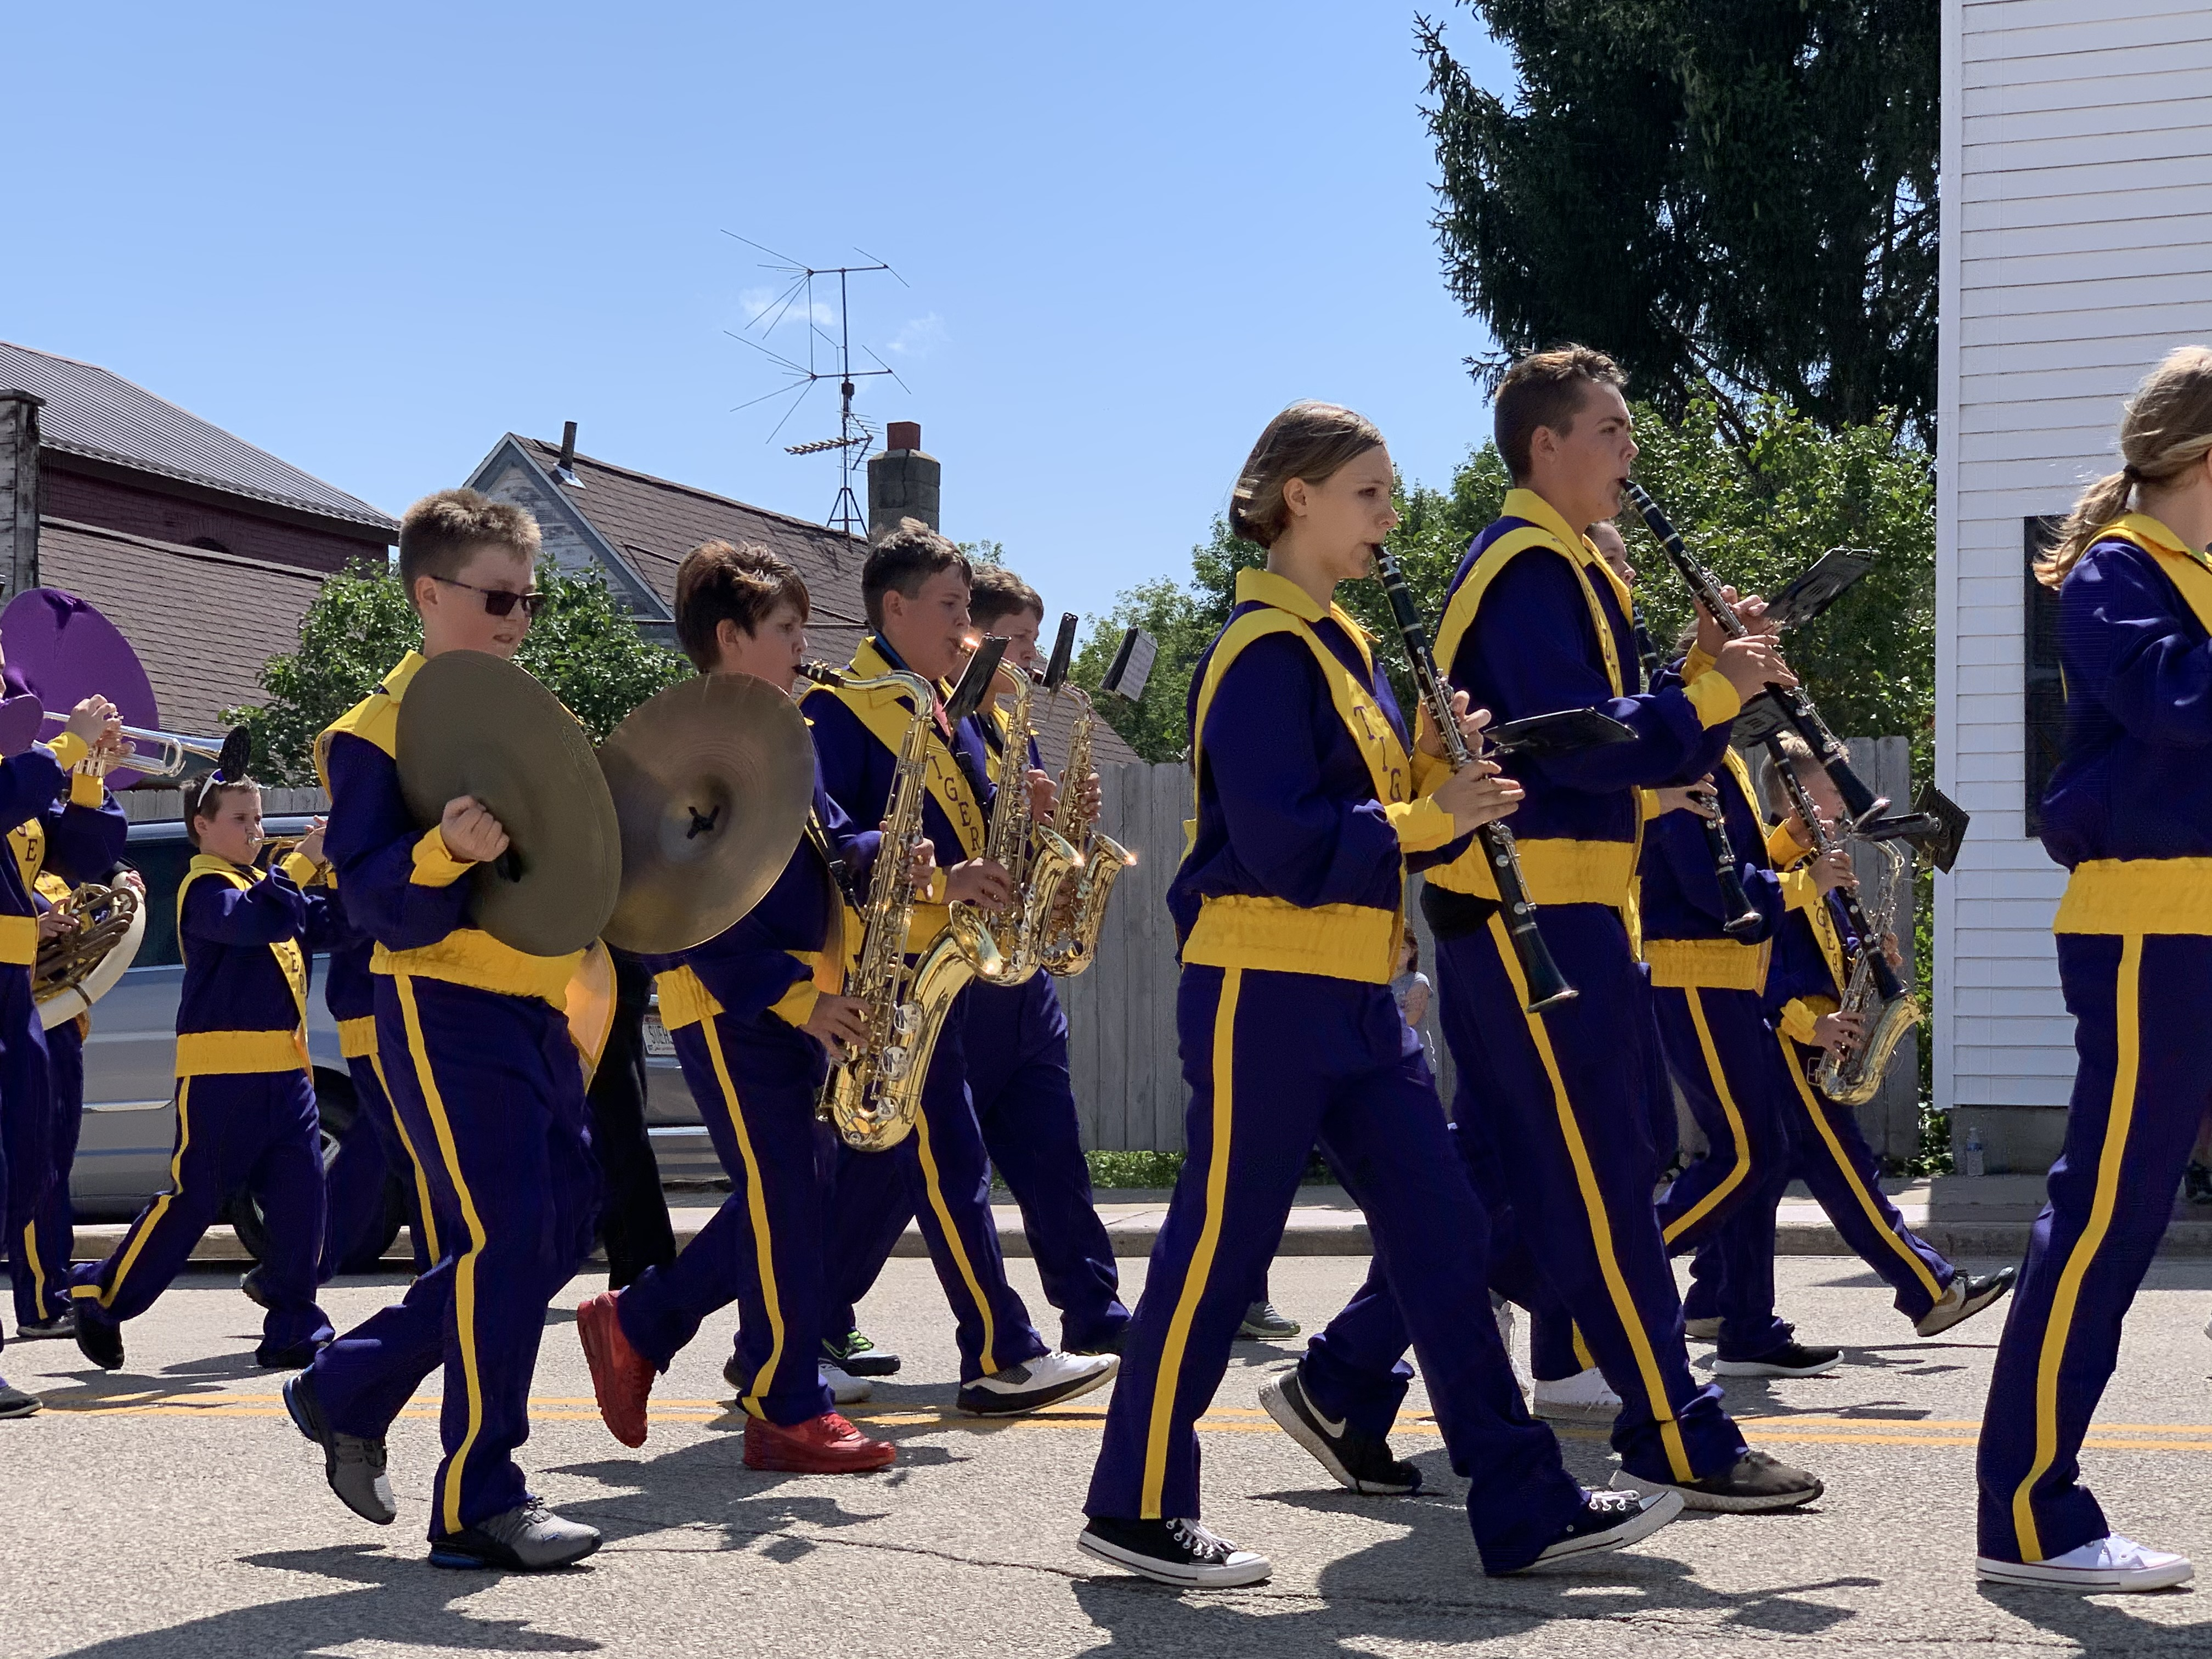 The Tigerton High School band kicks off the annual Lumberjack Days parade as they provide music and march along Cedar Street on Aug. 29.Luke Reimer | NEW Media